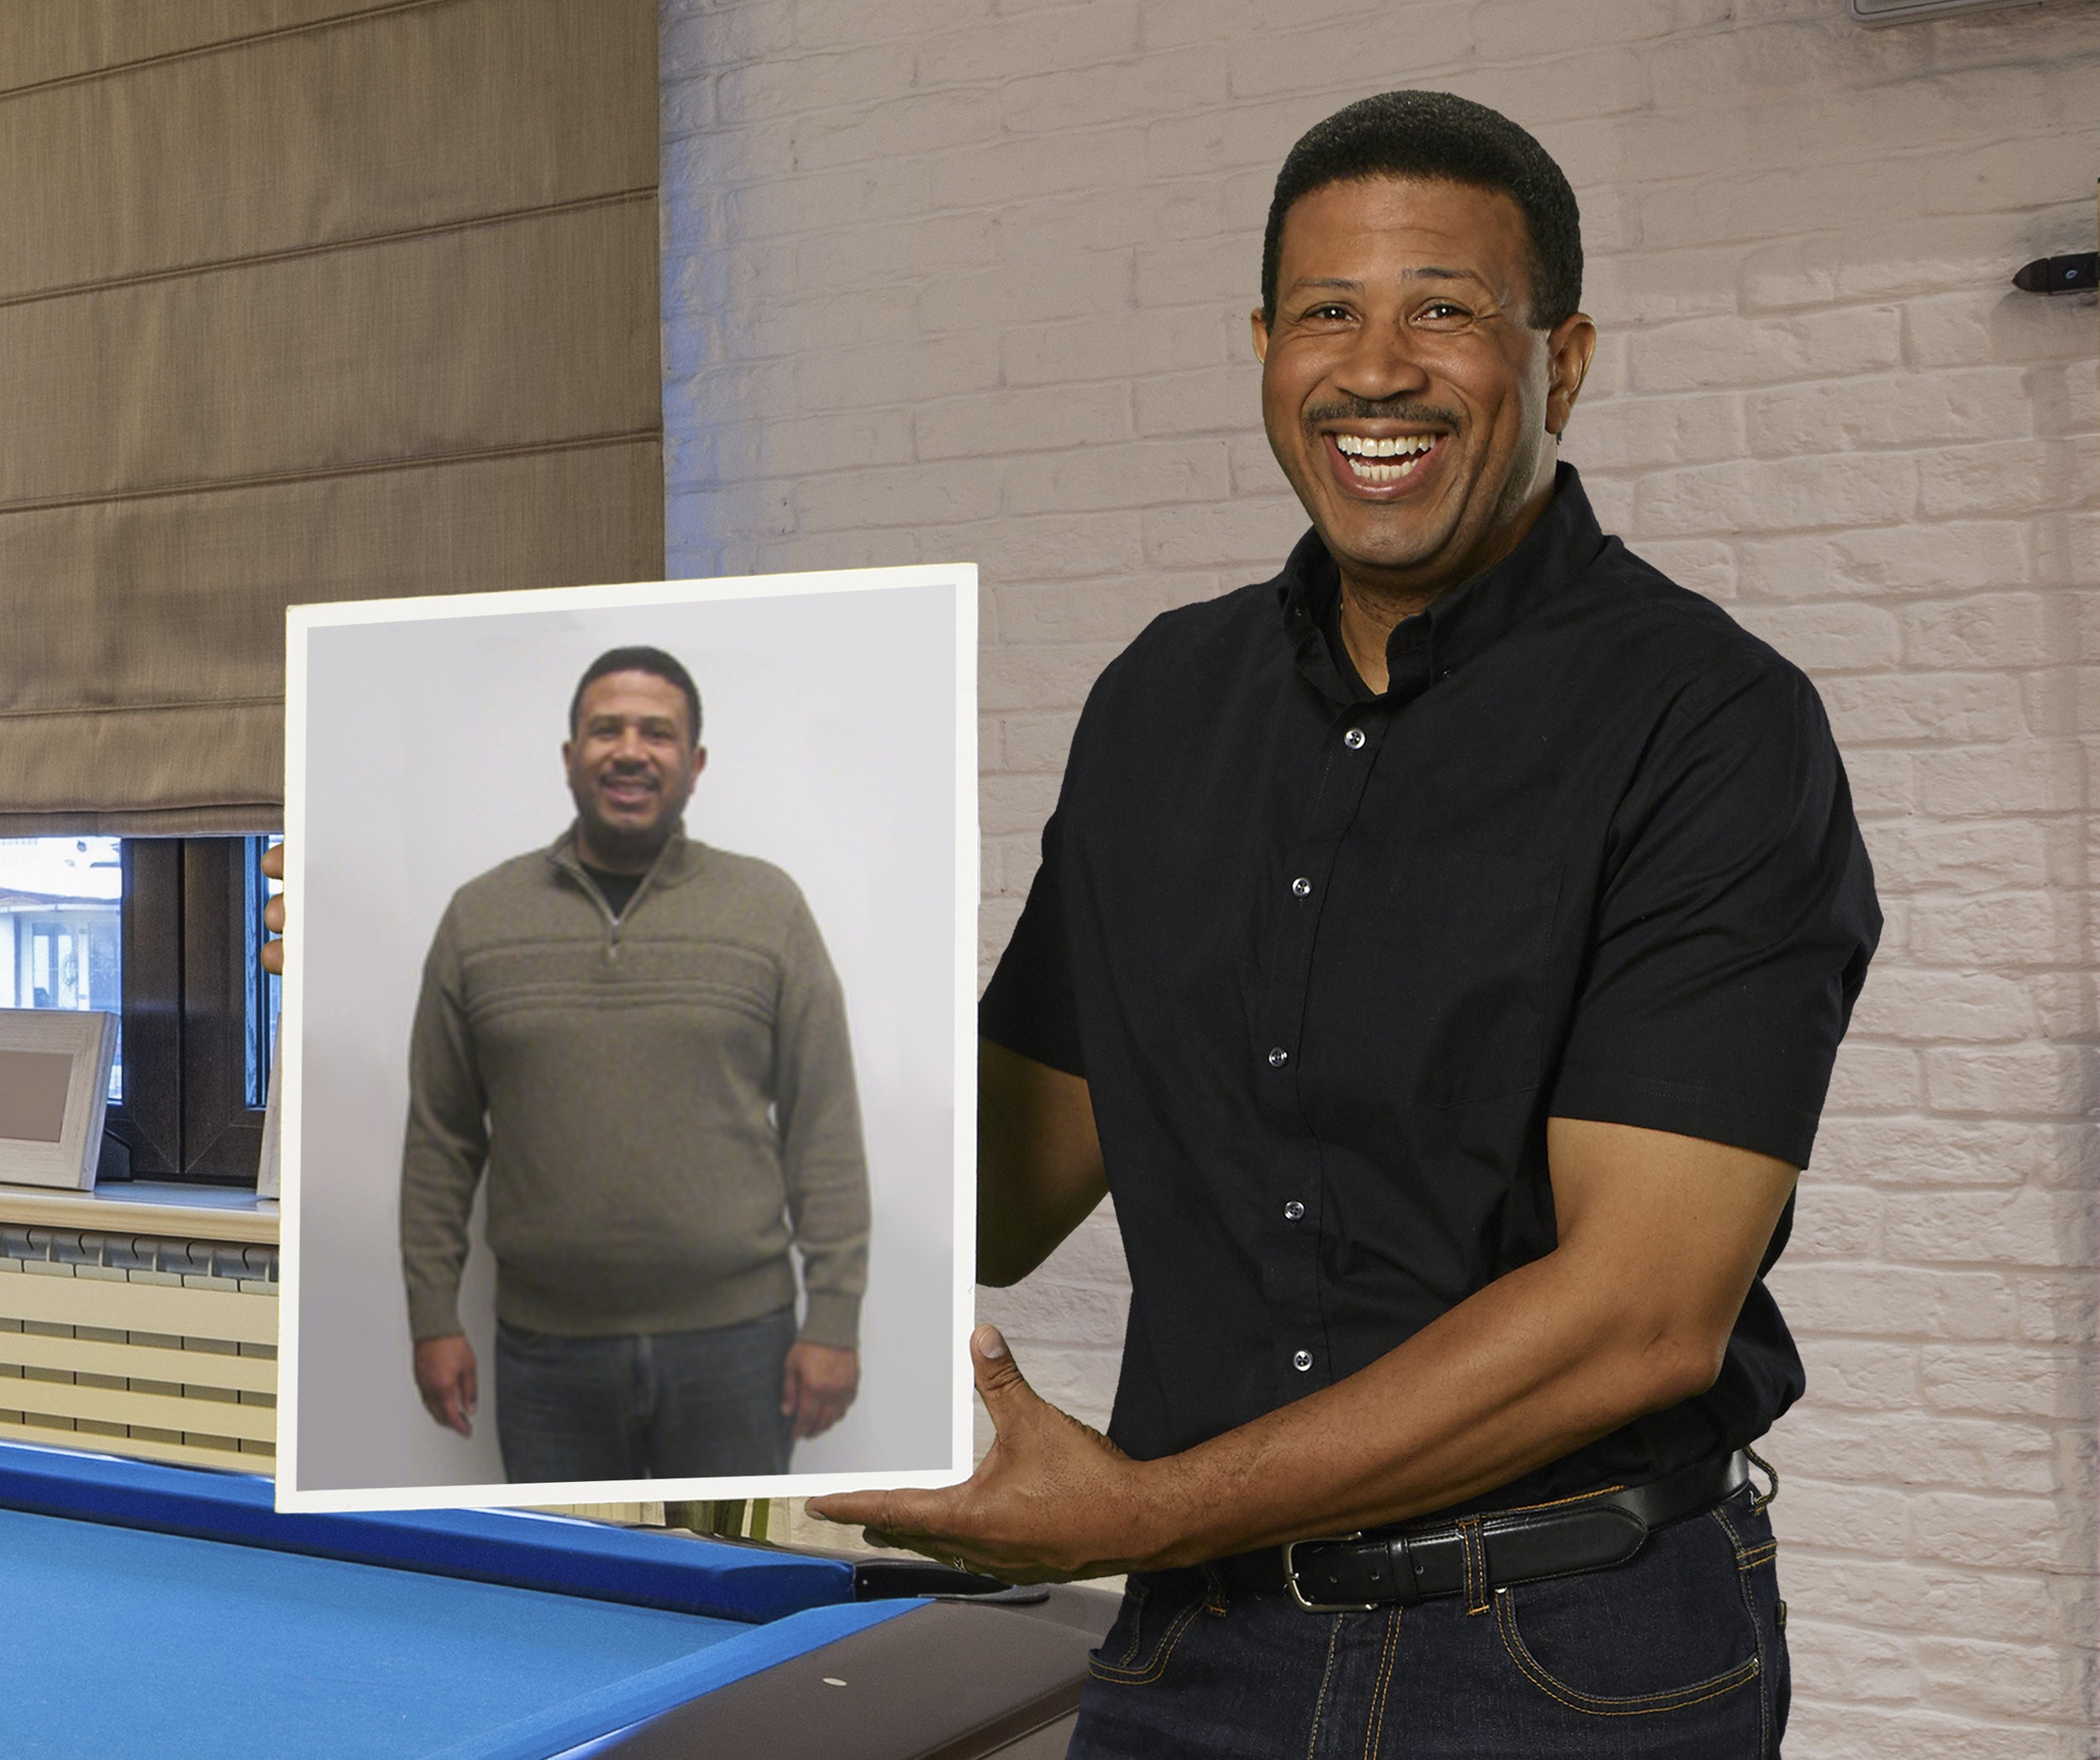 Maurice M. - lost 54 lbs. in 17 weeks at MWLC Farmington Hills*